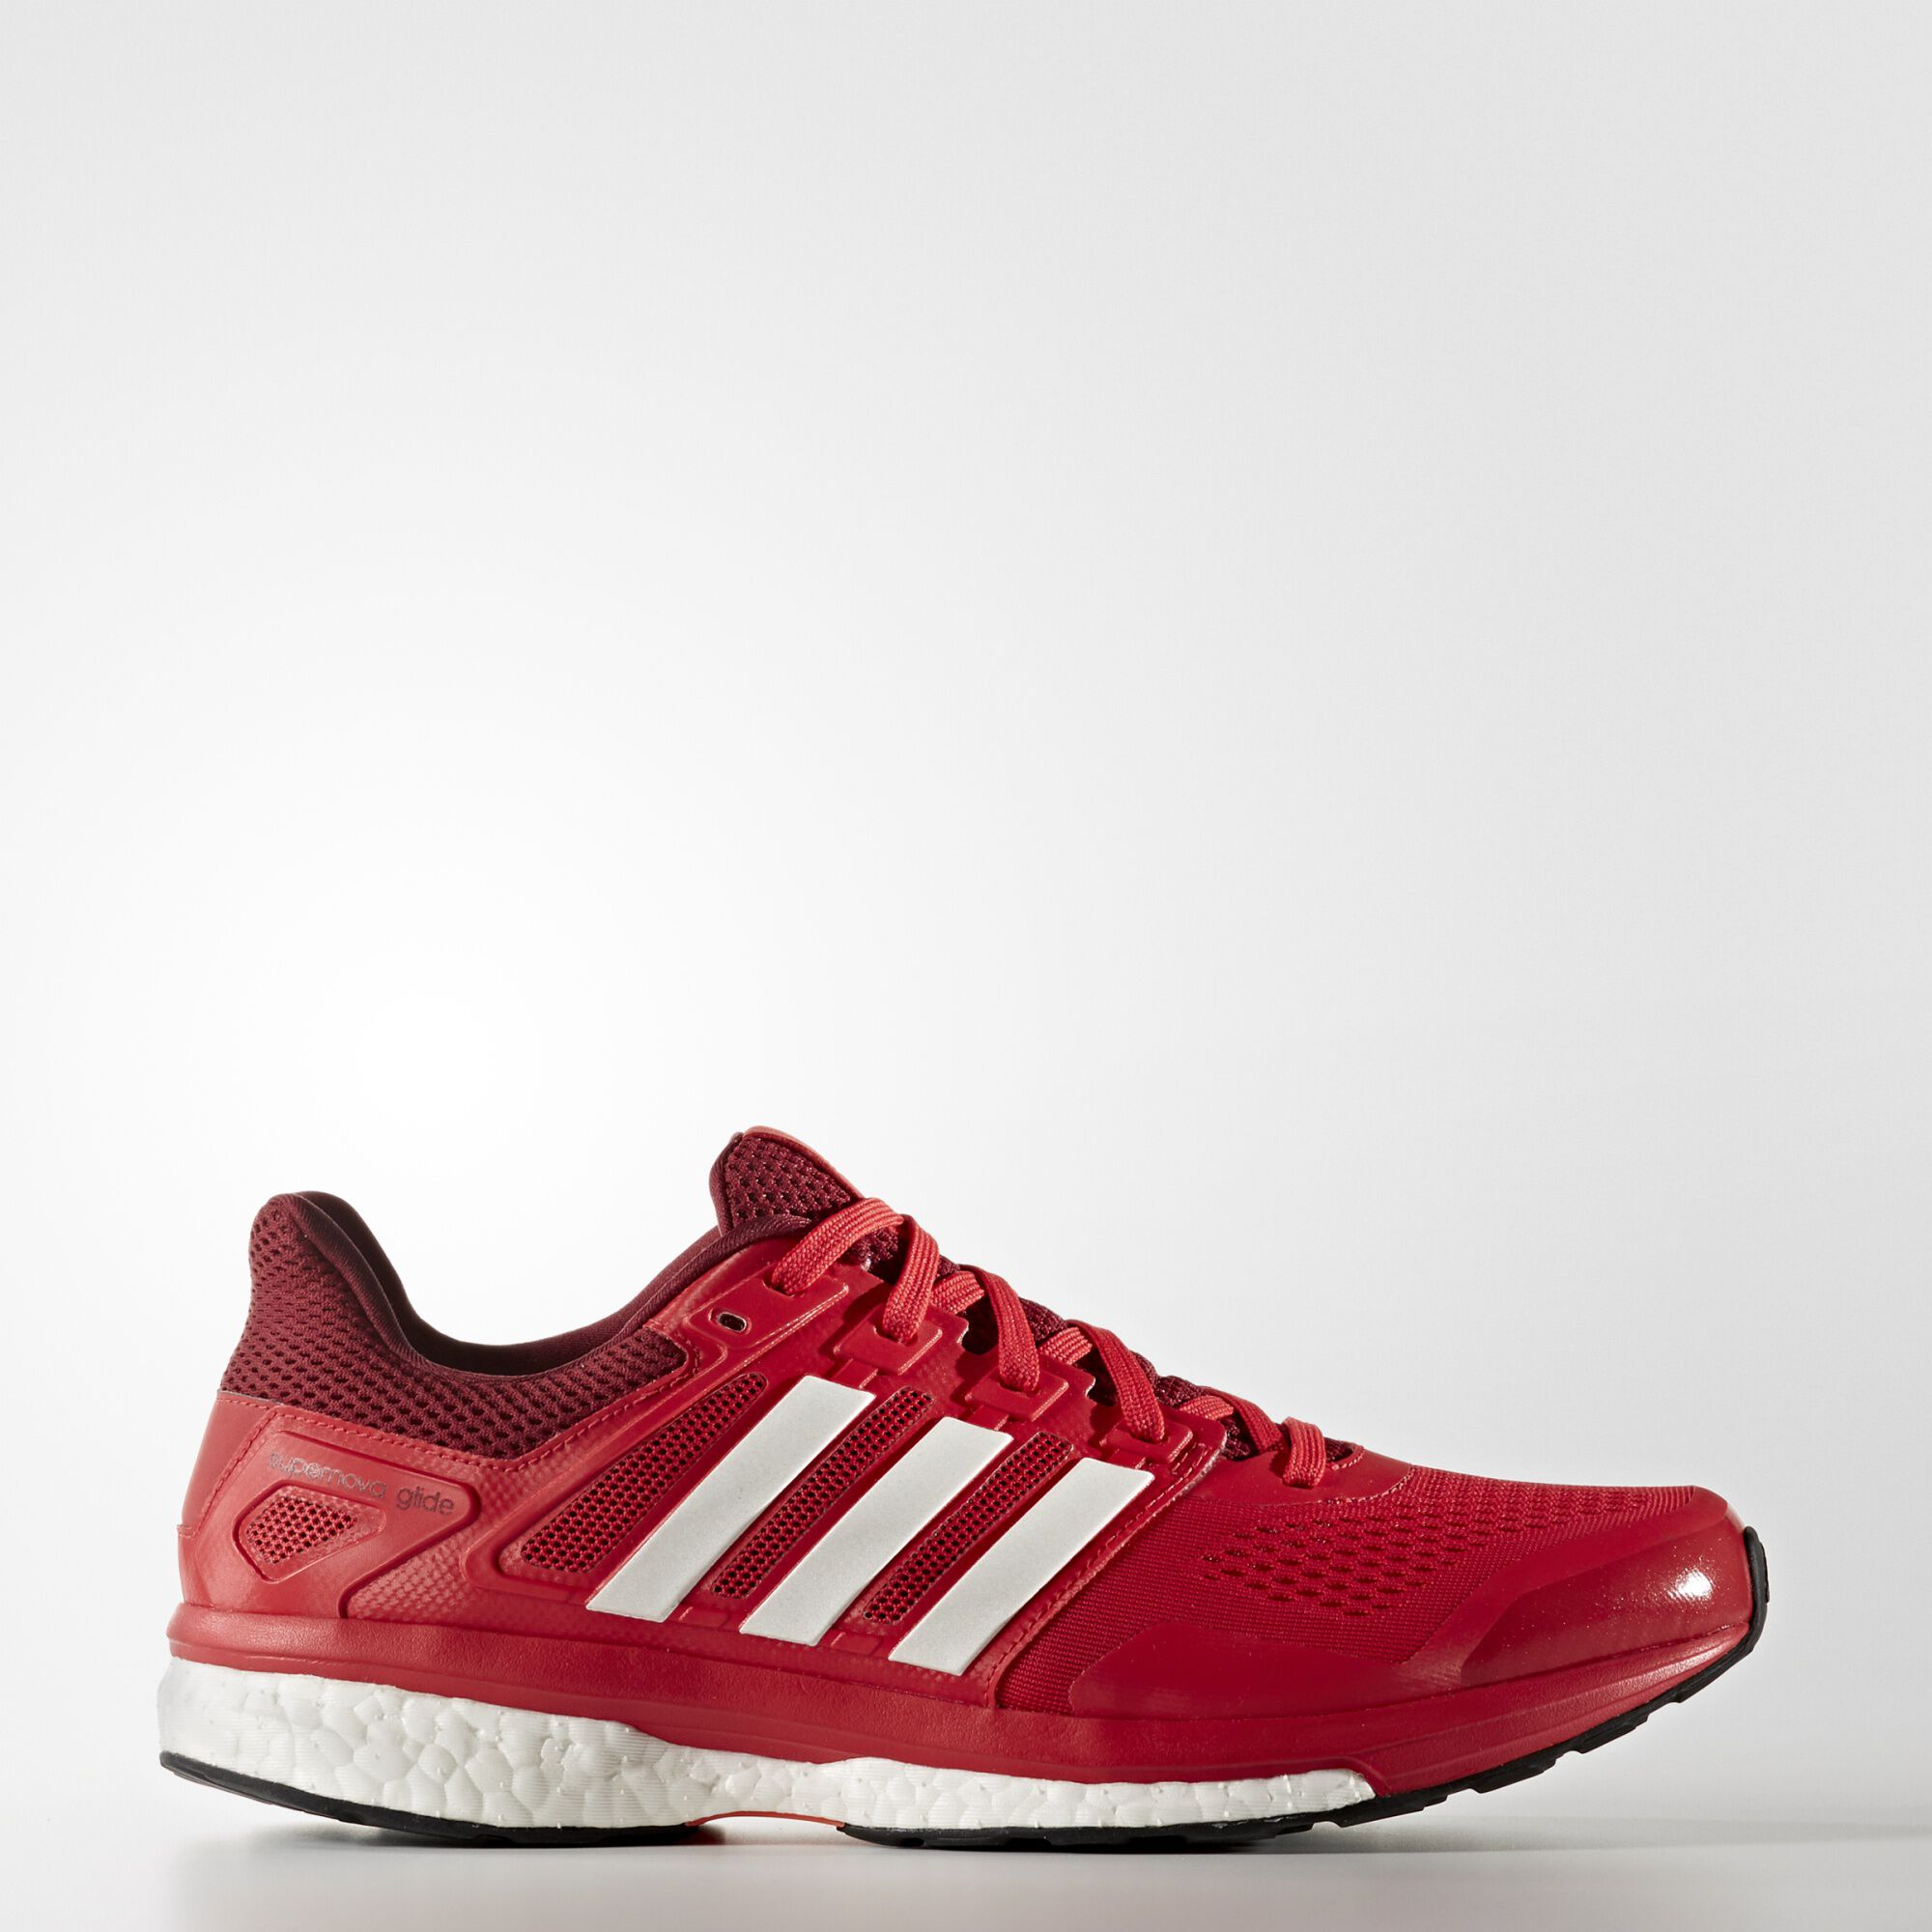 adidas supernova glide 8 shoes red adidas us. Black Bedroom Furniture Sets. Home Design Ideas